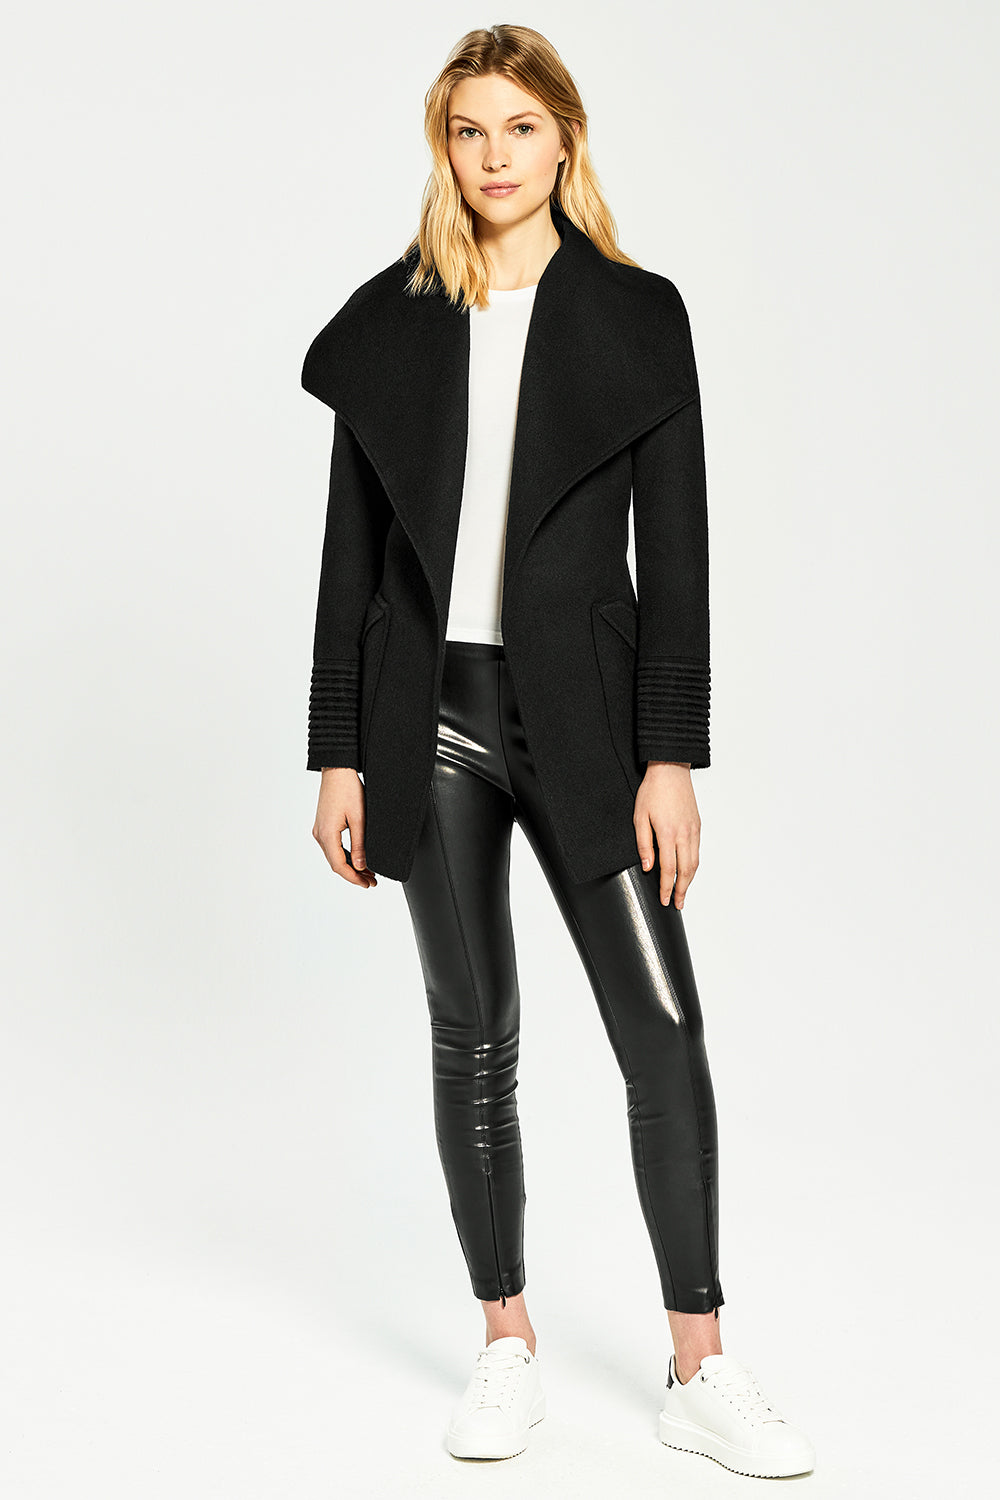 Sentaler Cropped Wide Collar Wrap Coat featured in Baby Alpaca and available in Black. Seen from front.